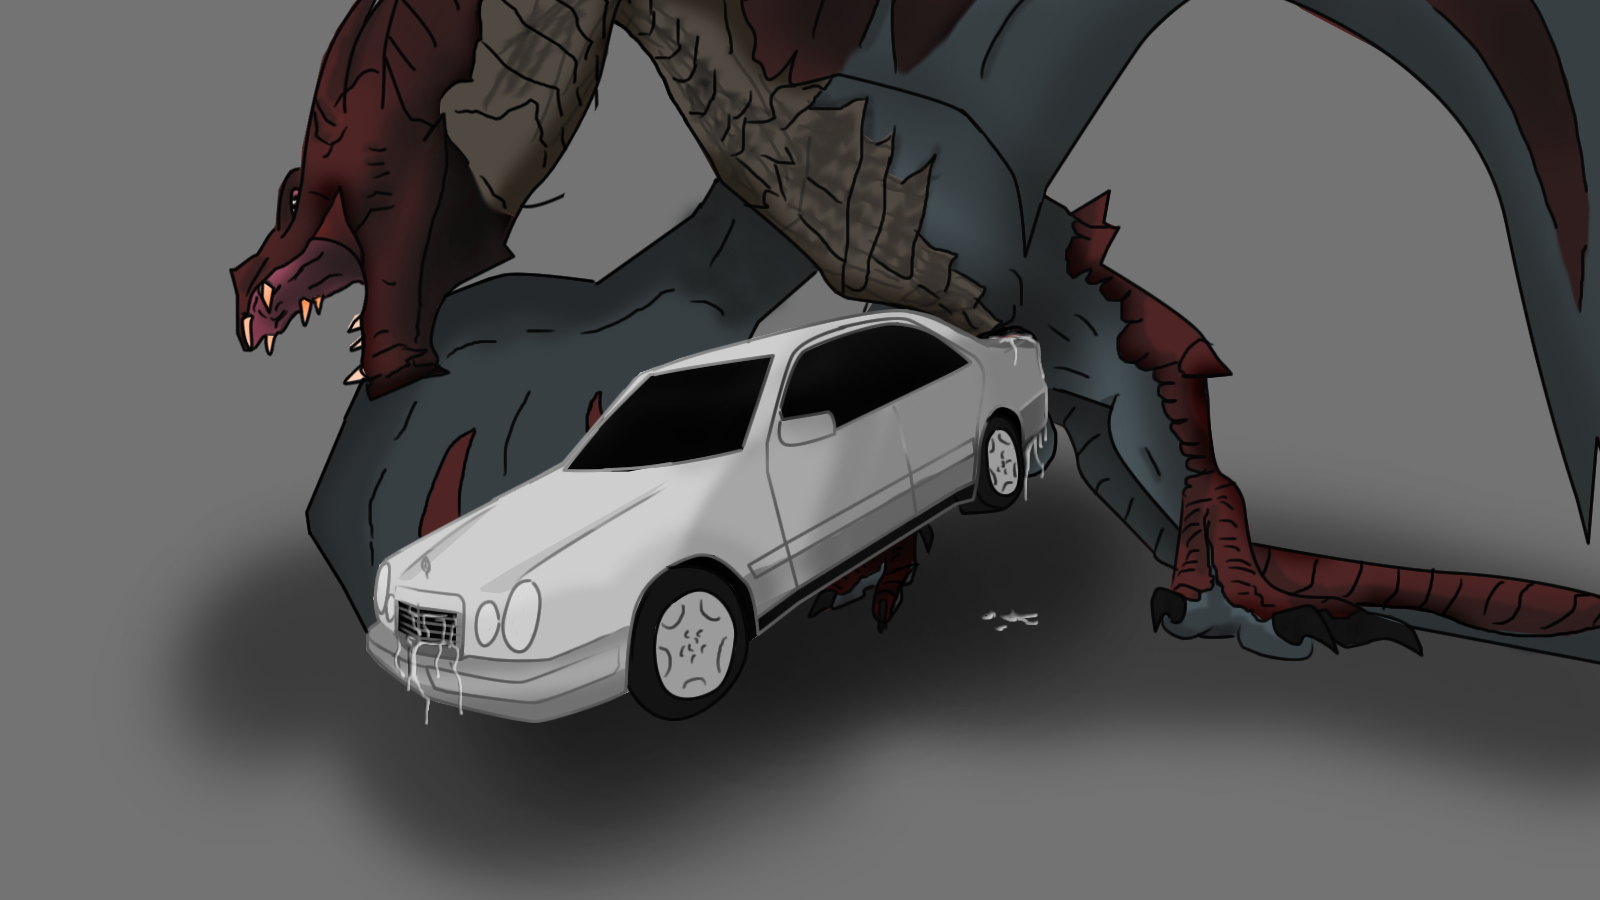 hot female dragons having sex with cars